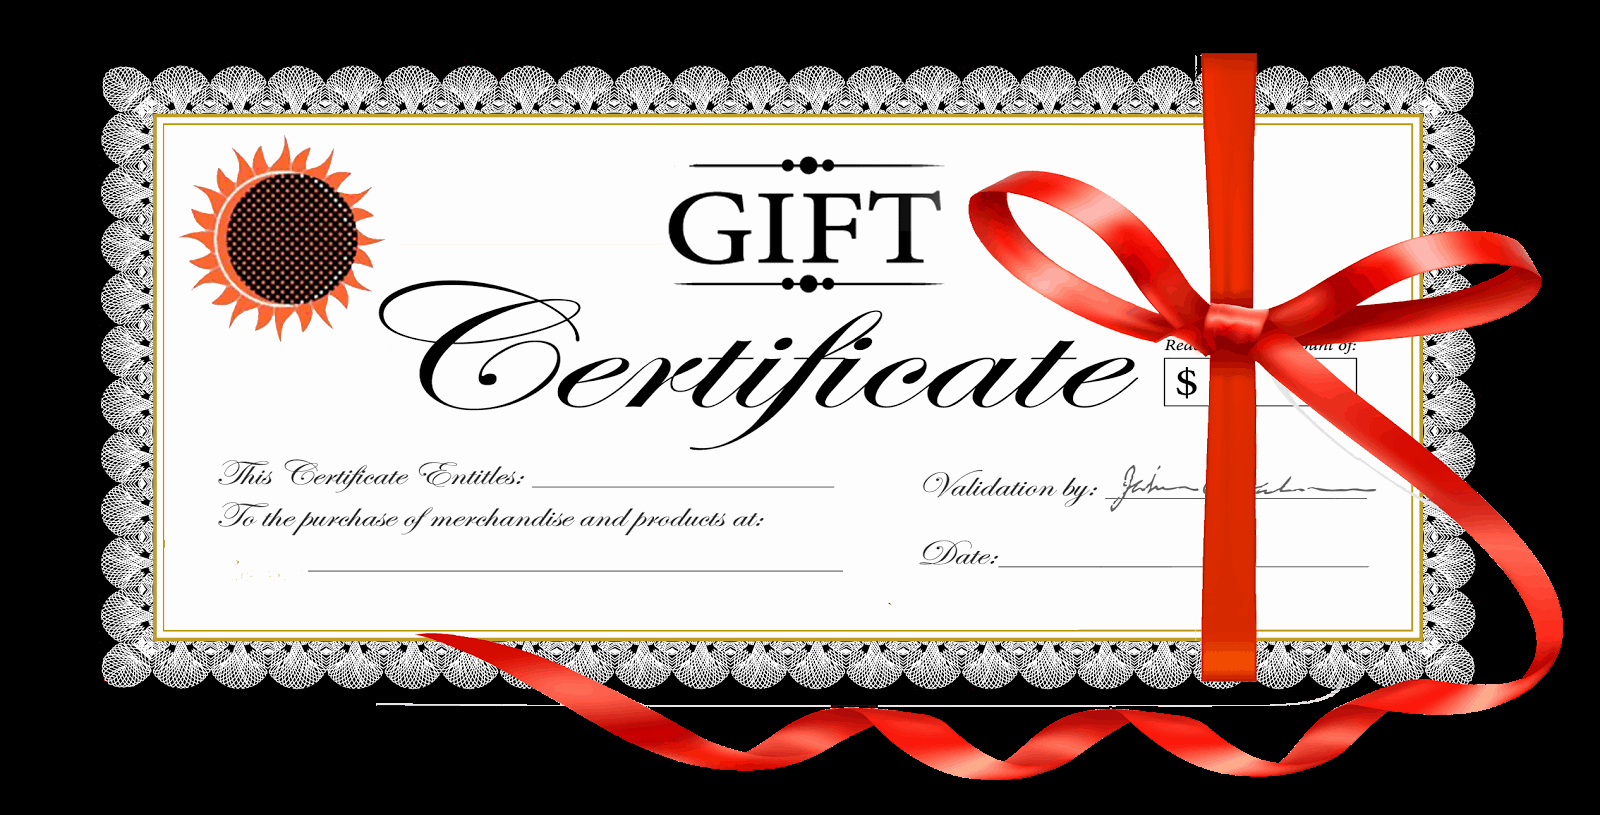 Samples Of Gift Certificate Fresh 18 Gift Certificate Templates Excel Pdf formats